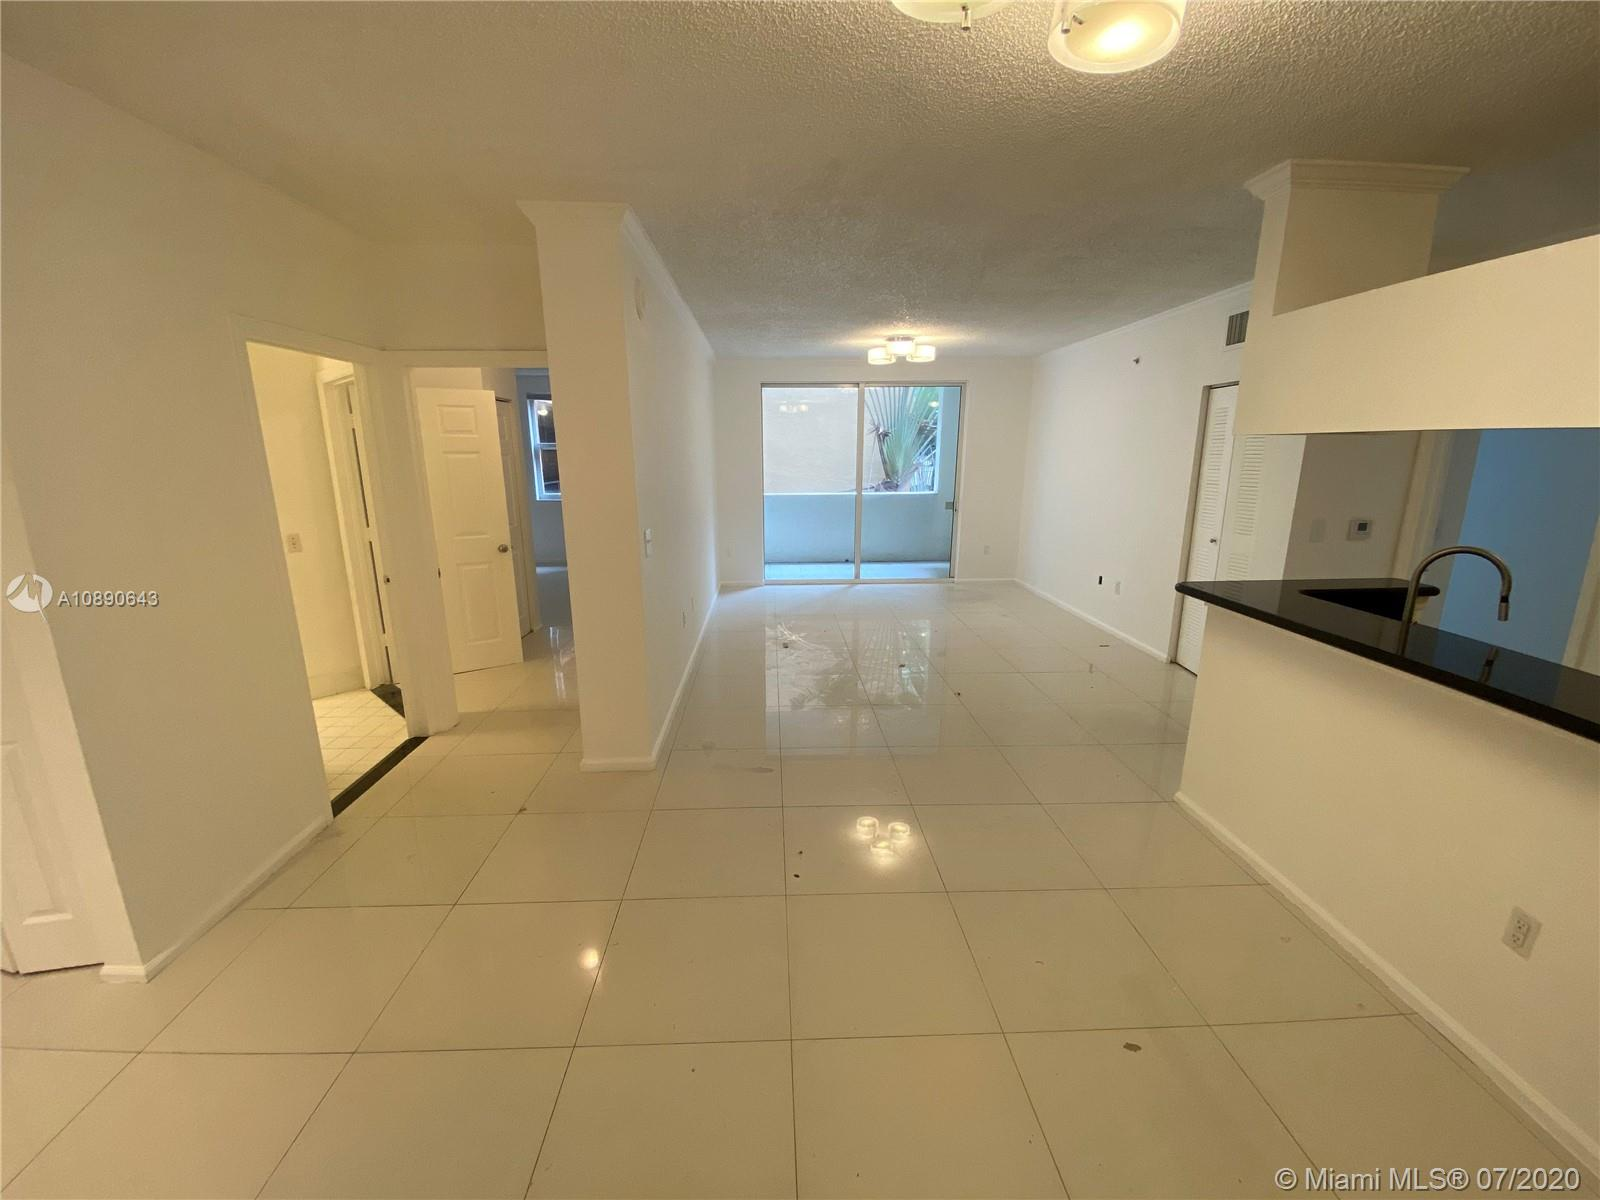 17150 N Bay Rd #2320 For Sale A10890643, FL